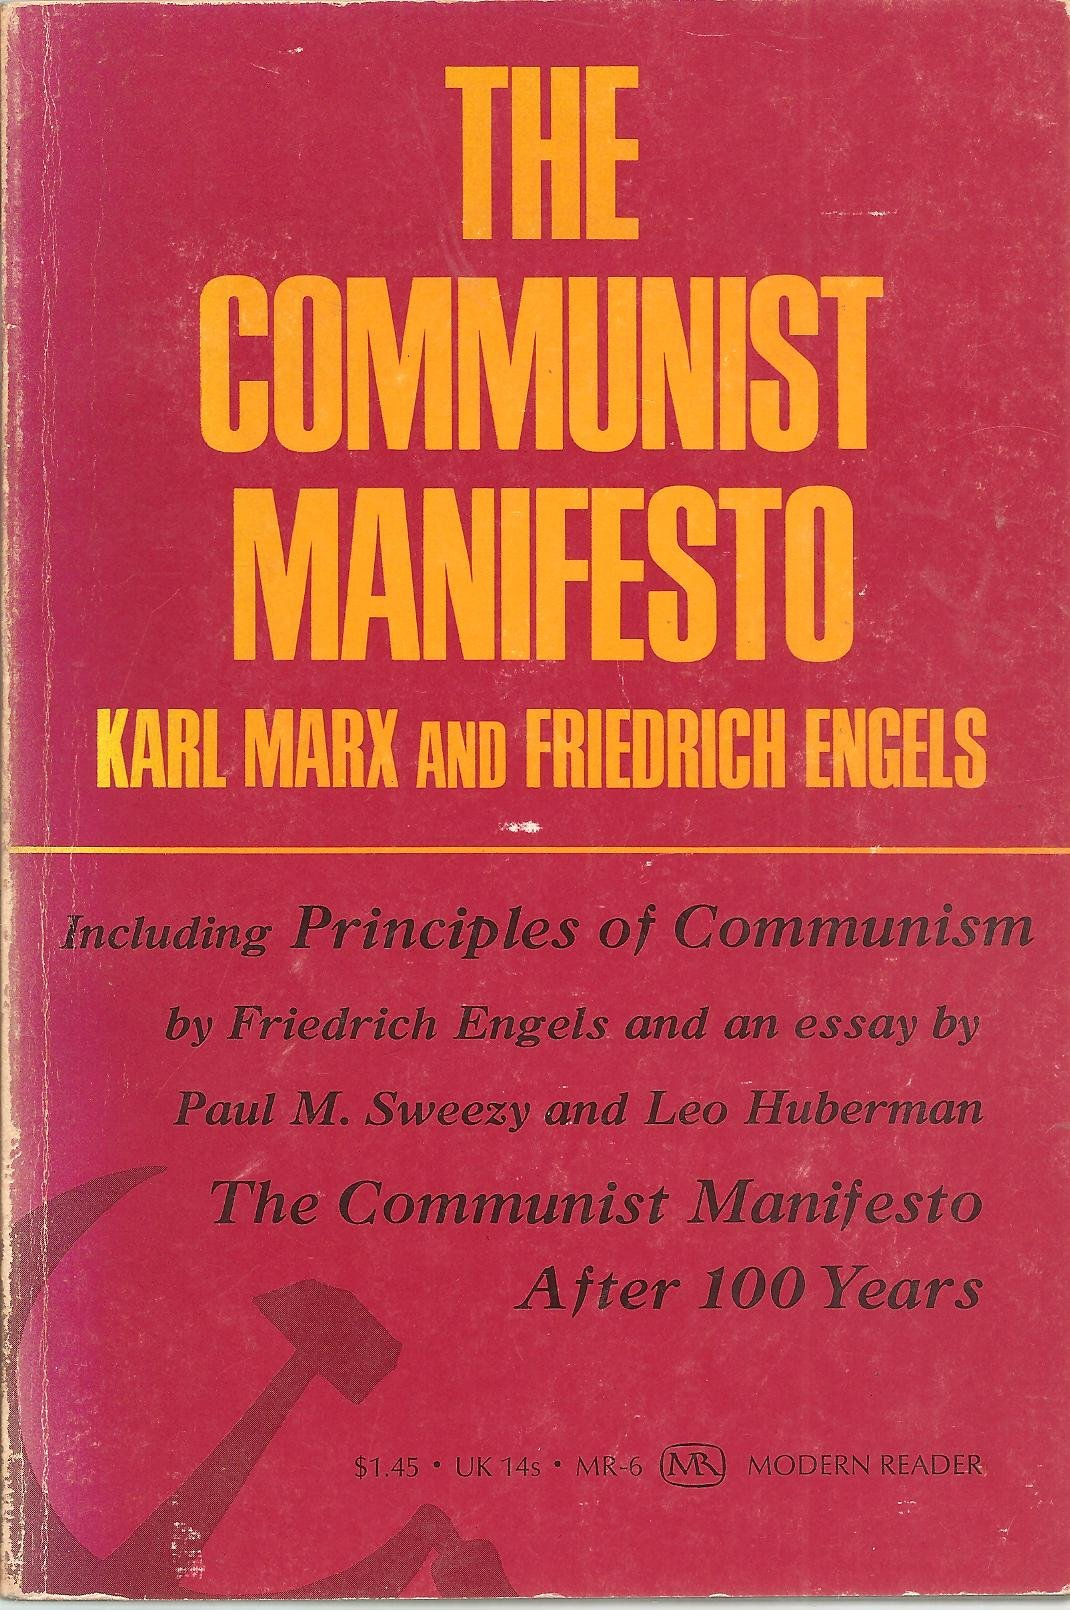 the communist manifesto principles of communism the communist  the communist manifesto principles of communism the communist manifesto after 100 years friedrich engels karl marx amazon com books